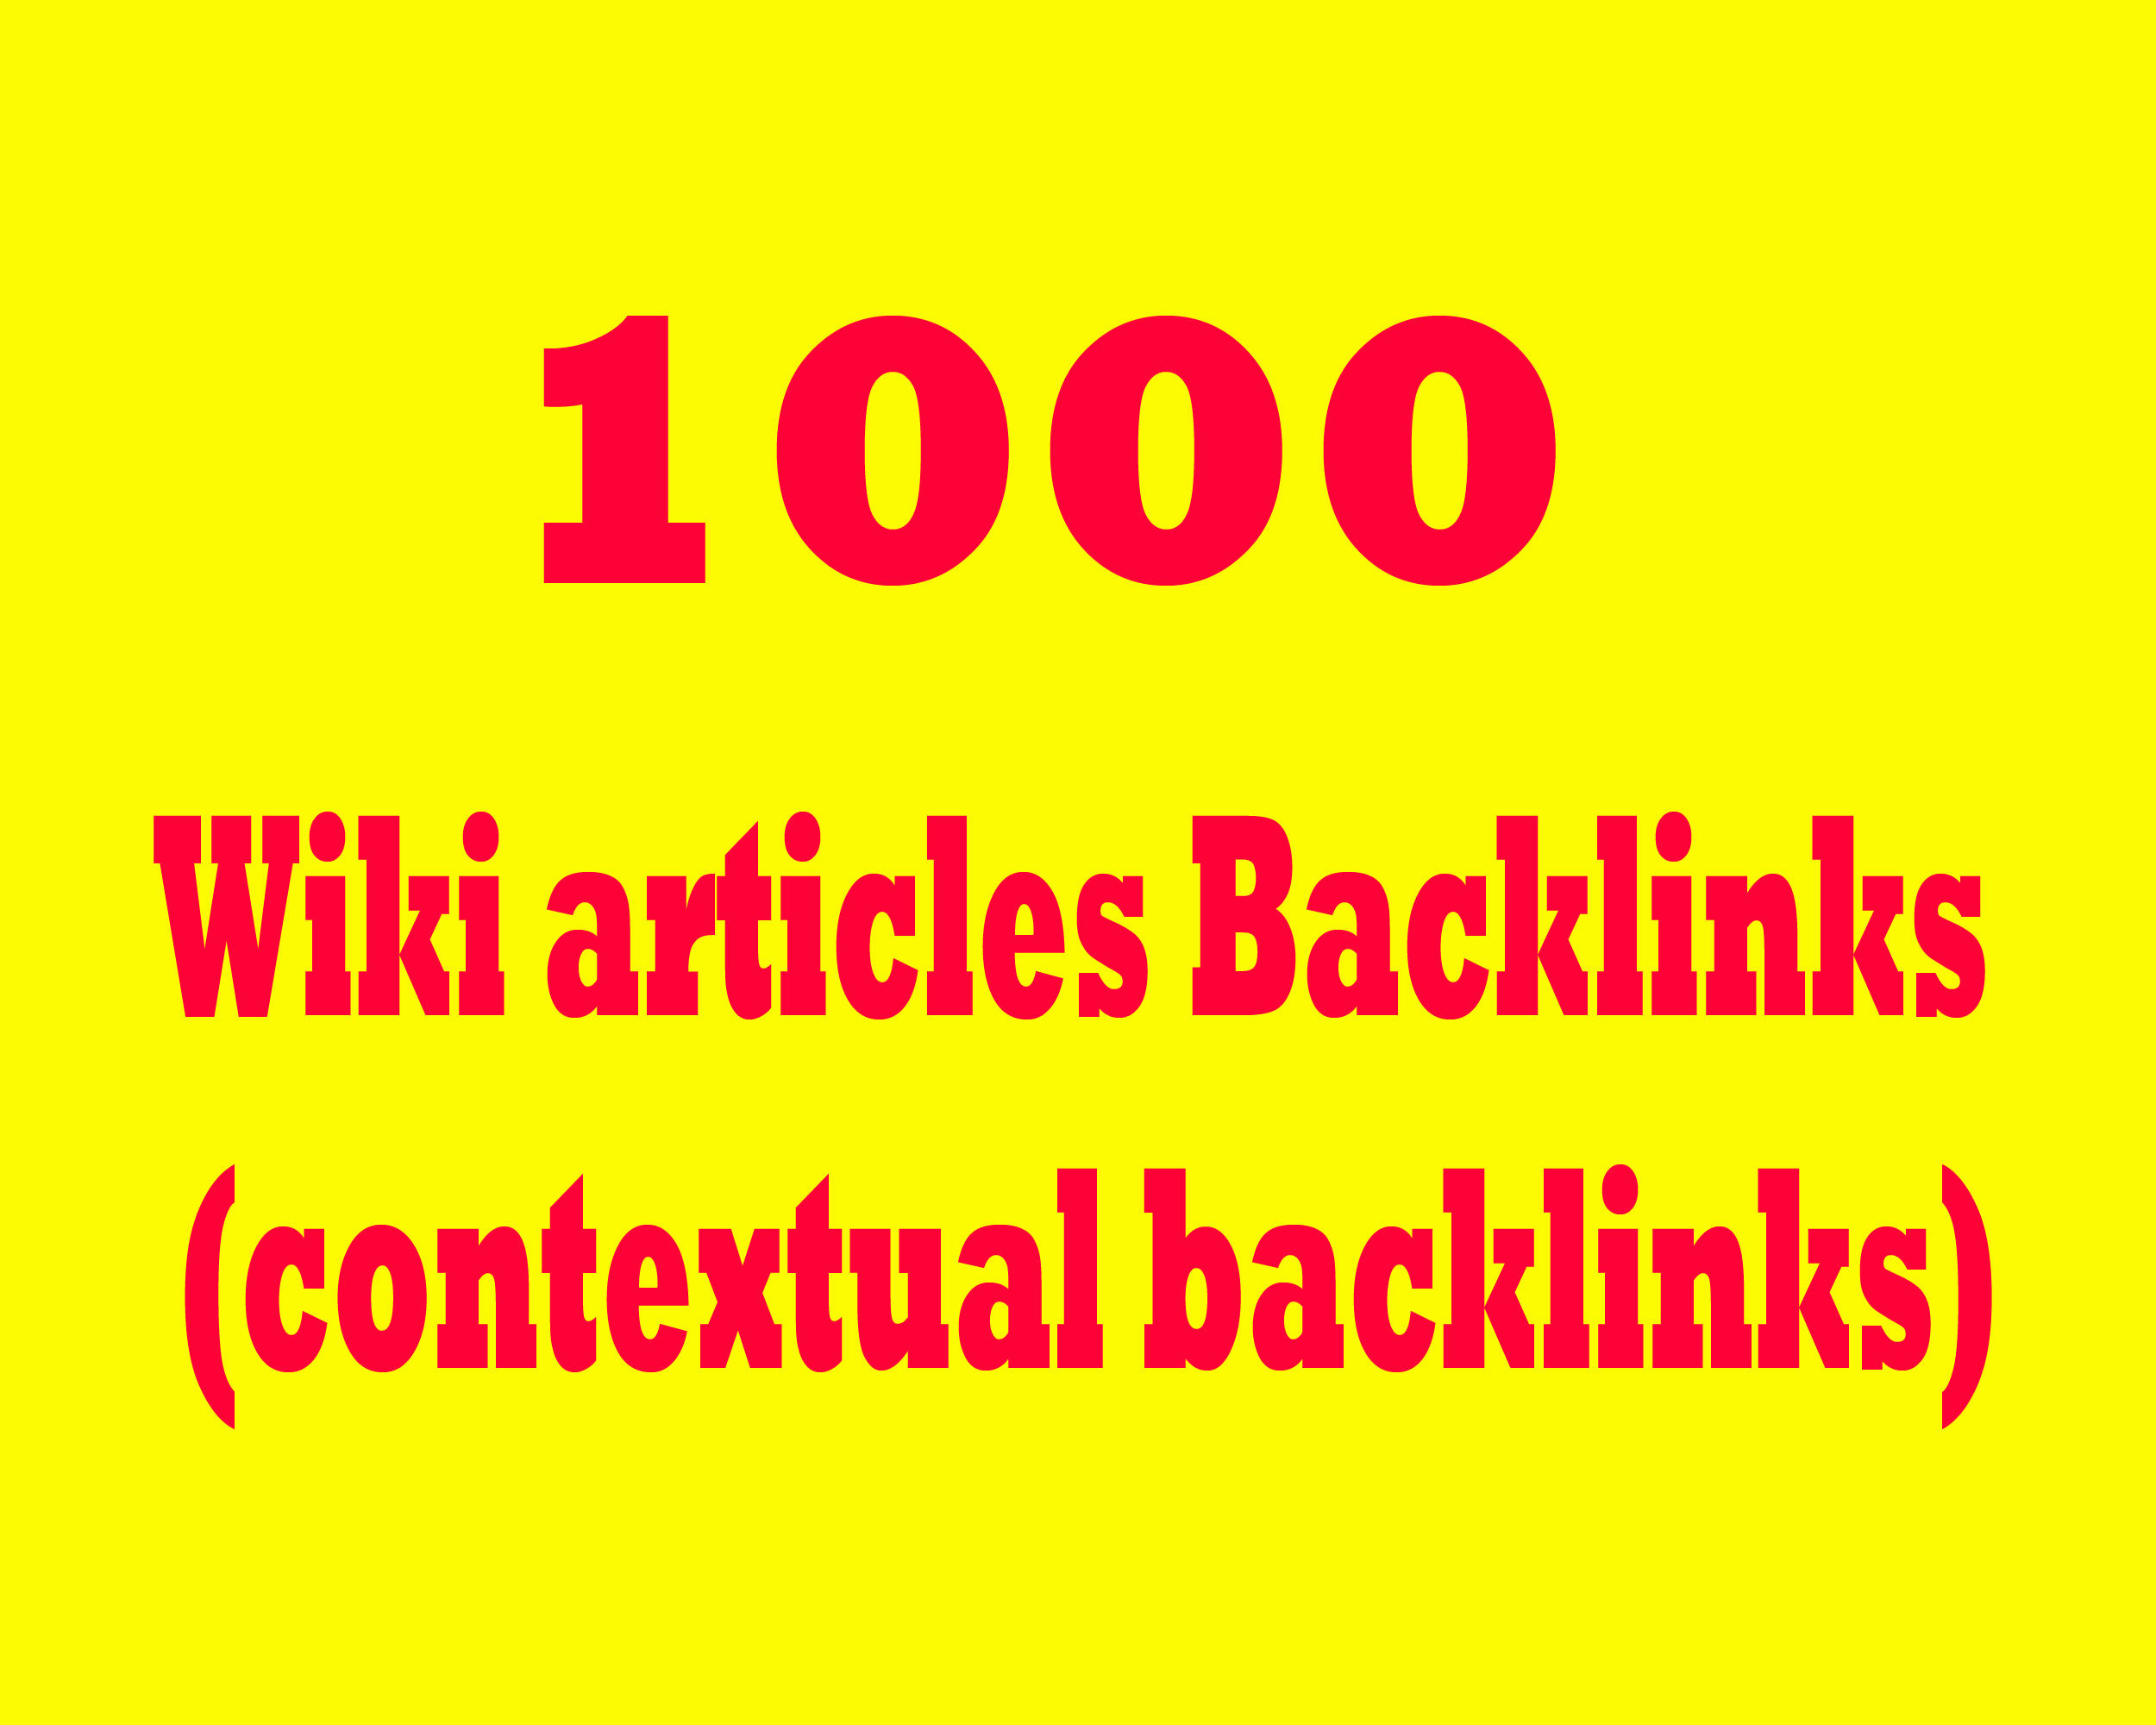 Give 1000 Wiki articles Backlinks contextual backlinks